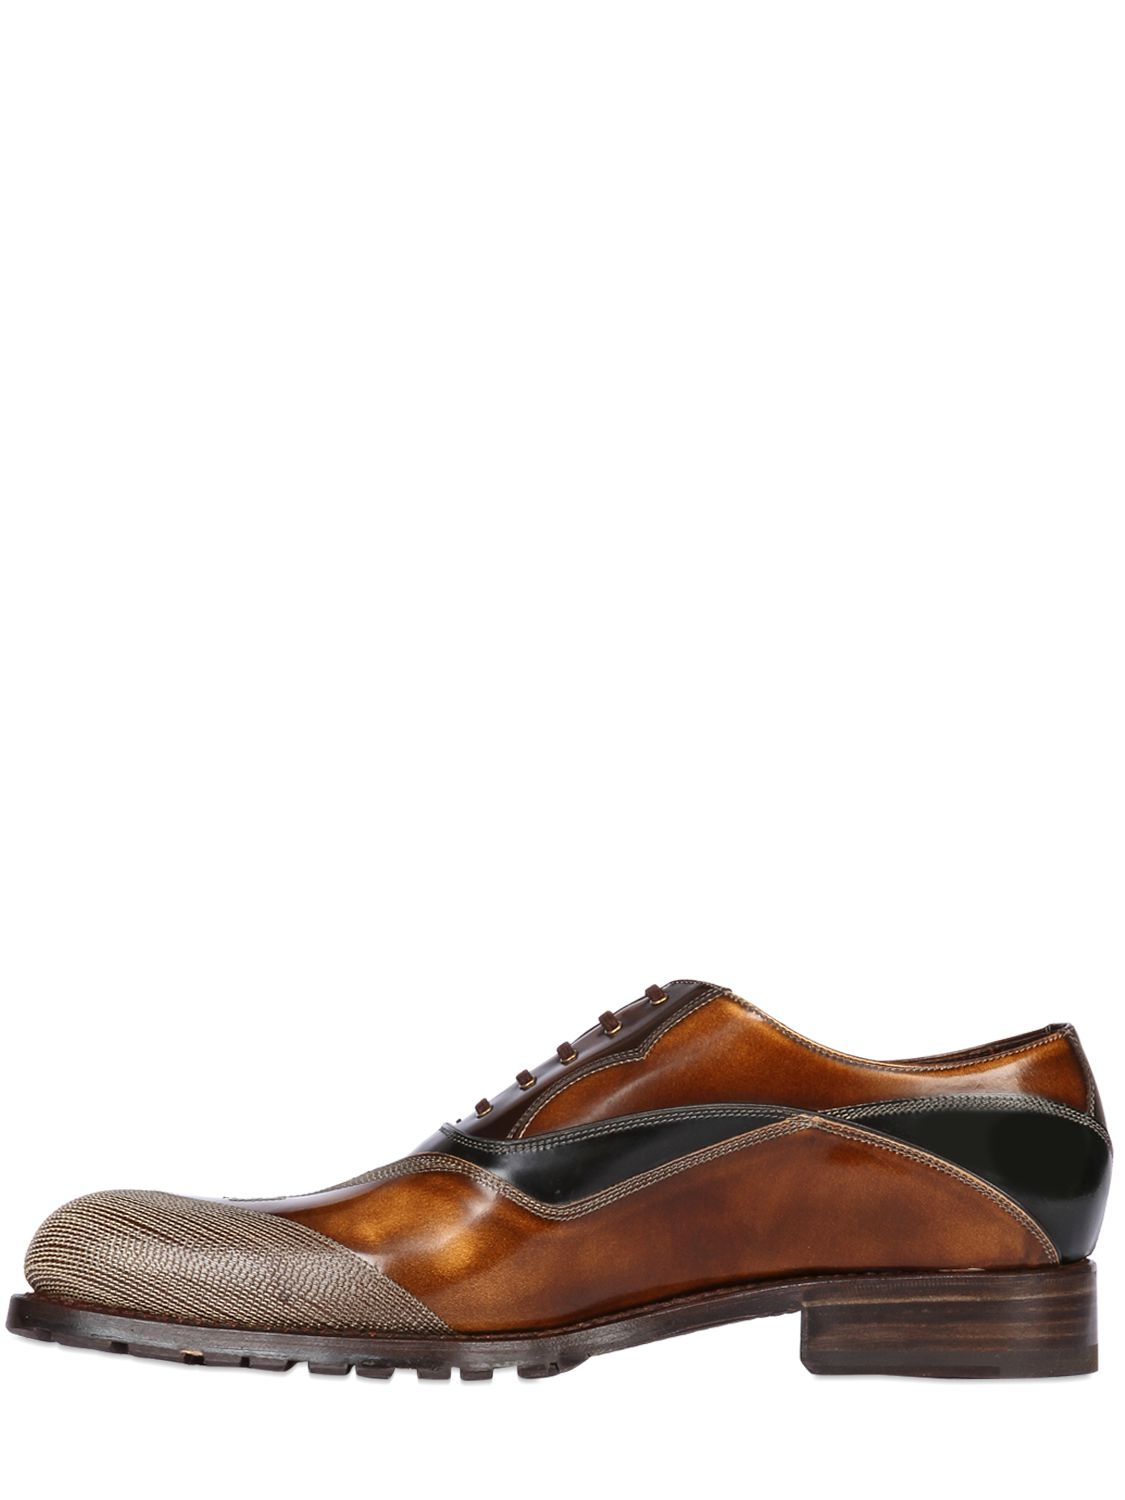 Lanvin Brushed Leather Oxford Shoes